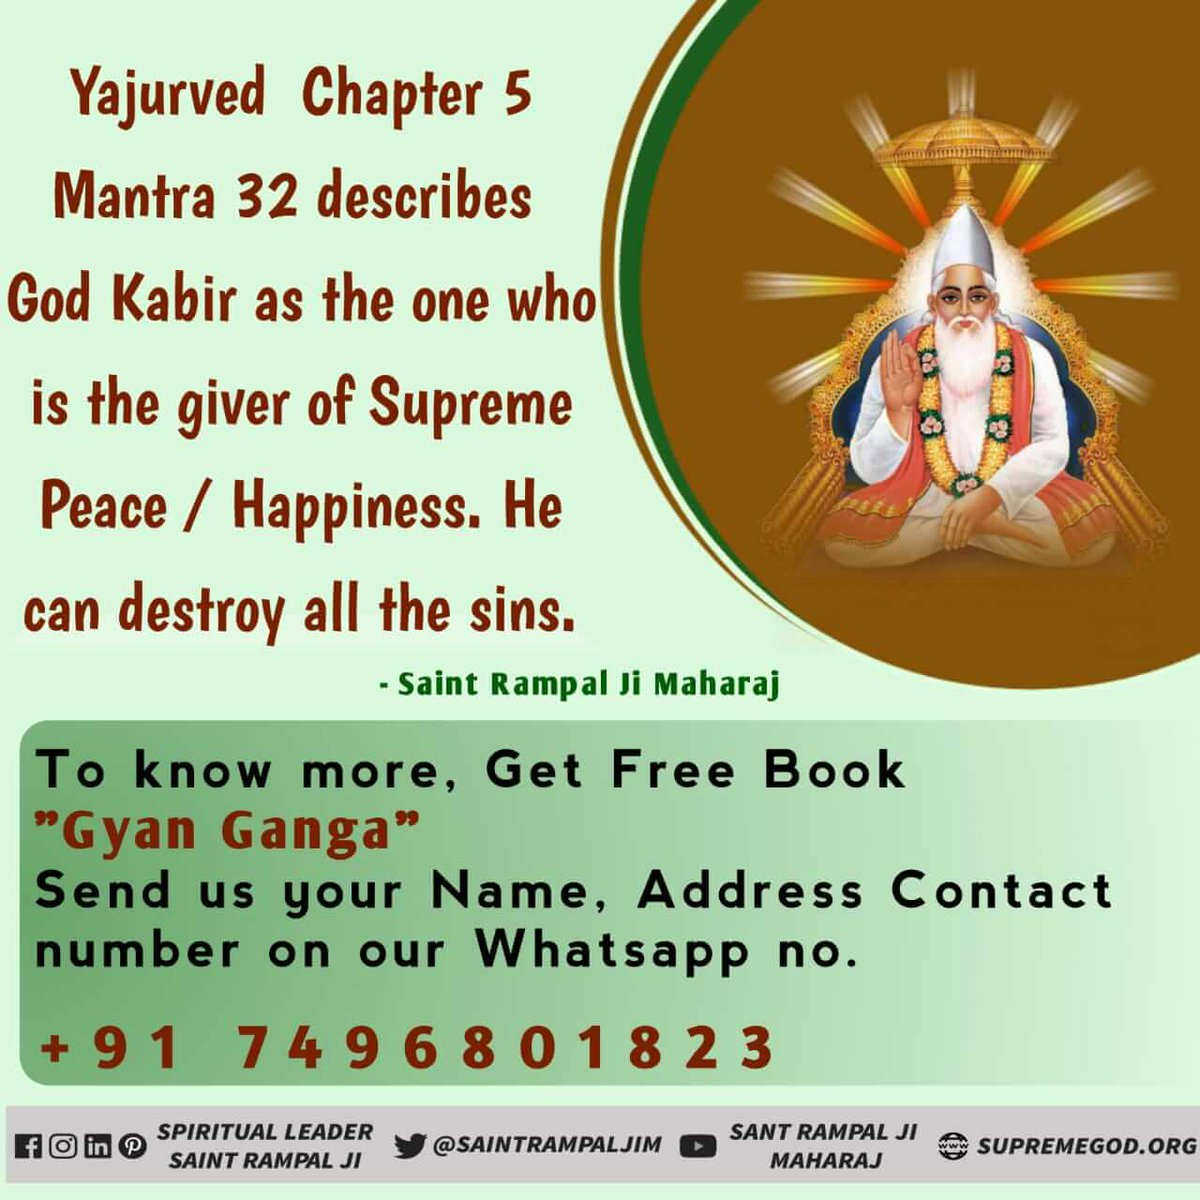 #पूर्णगुरु_का_अनमोल_सत्संग God Kabir is the Destroyer of all Sins -- Yajurved Chapter 5 Mantra 32.  To know more, Read Free Book 'Gyan Ganga'. <br>http://pic.twitter.com/t6Z1fScobW